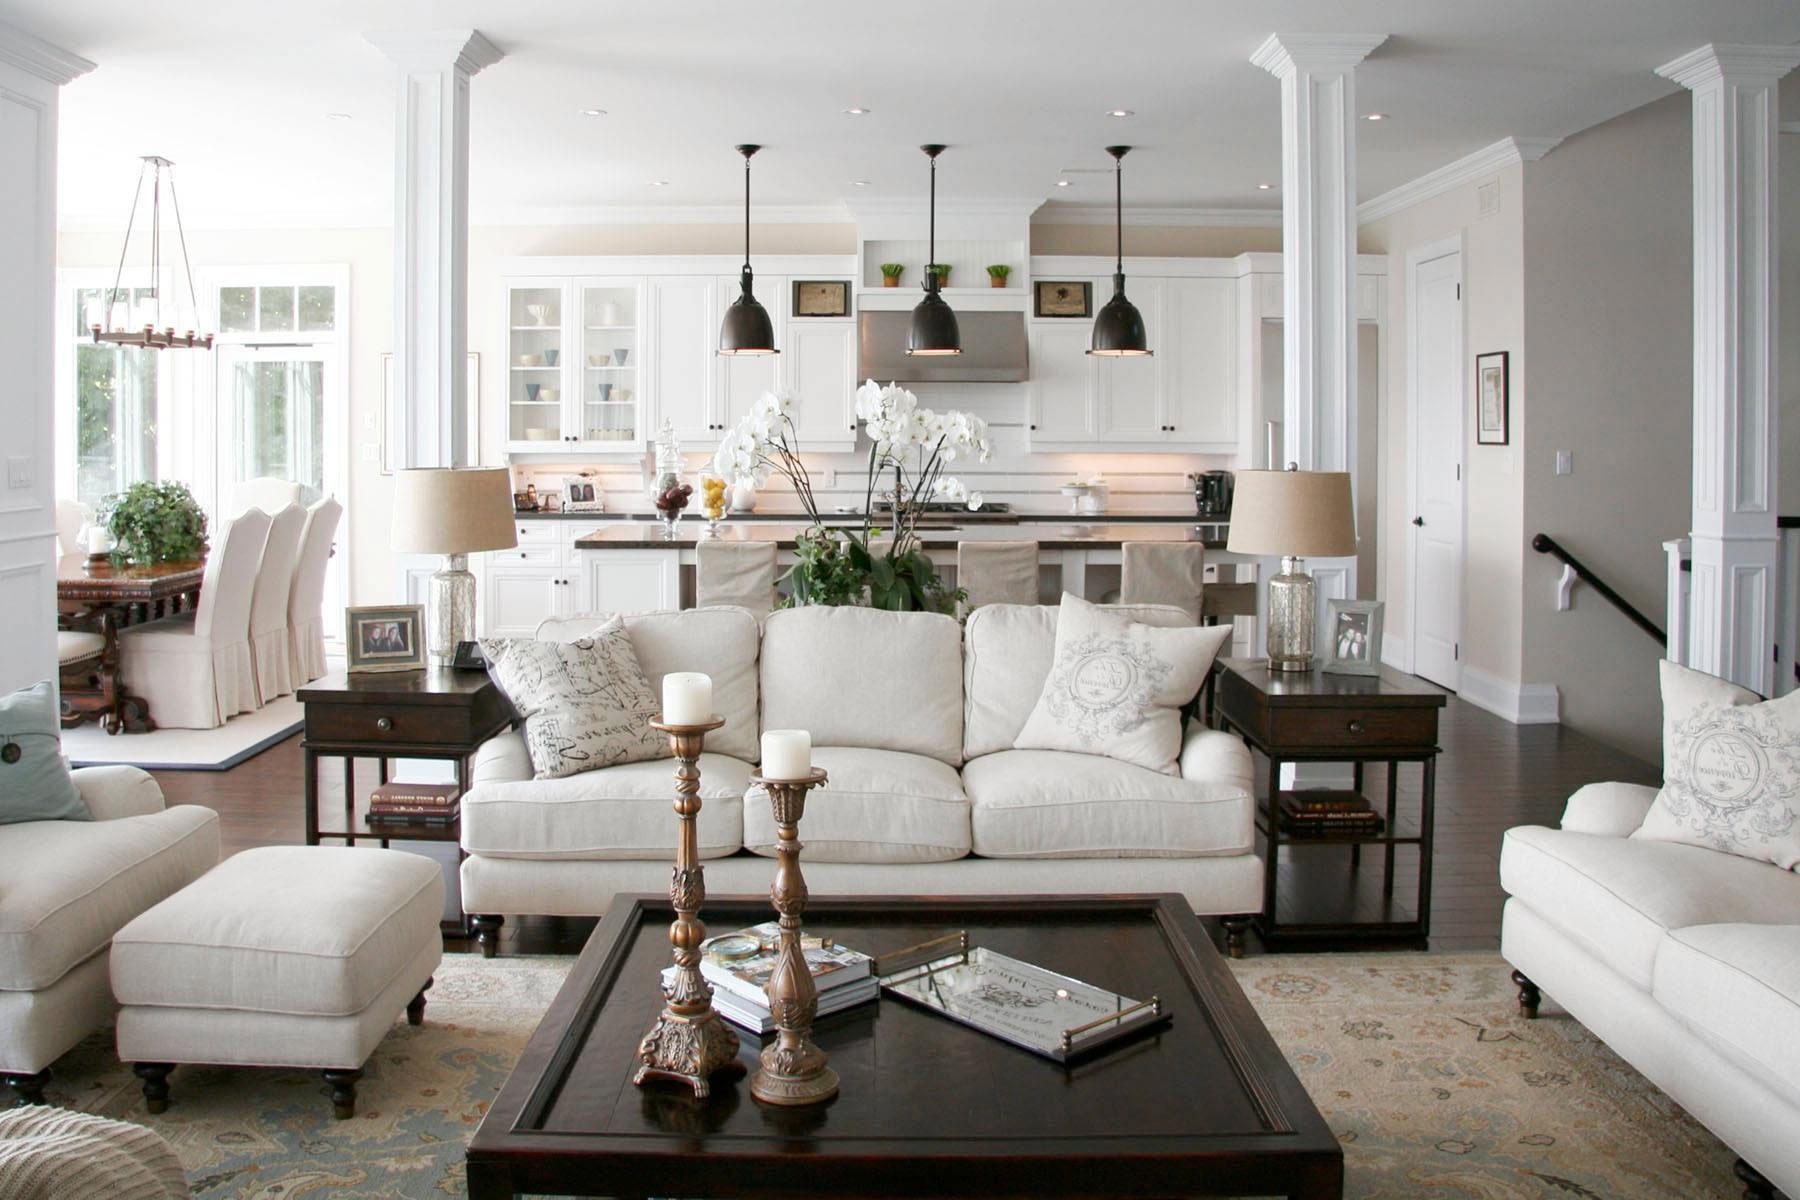 White traditional interior with black wooden furniture accents